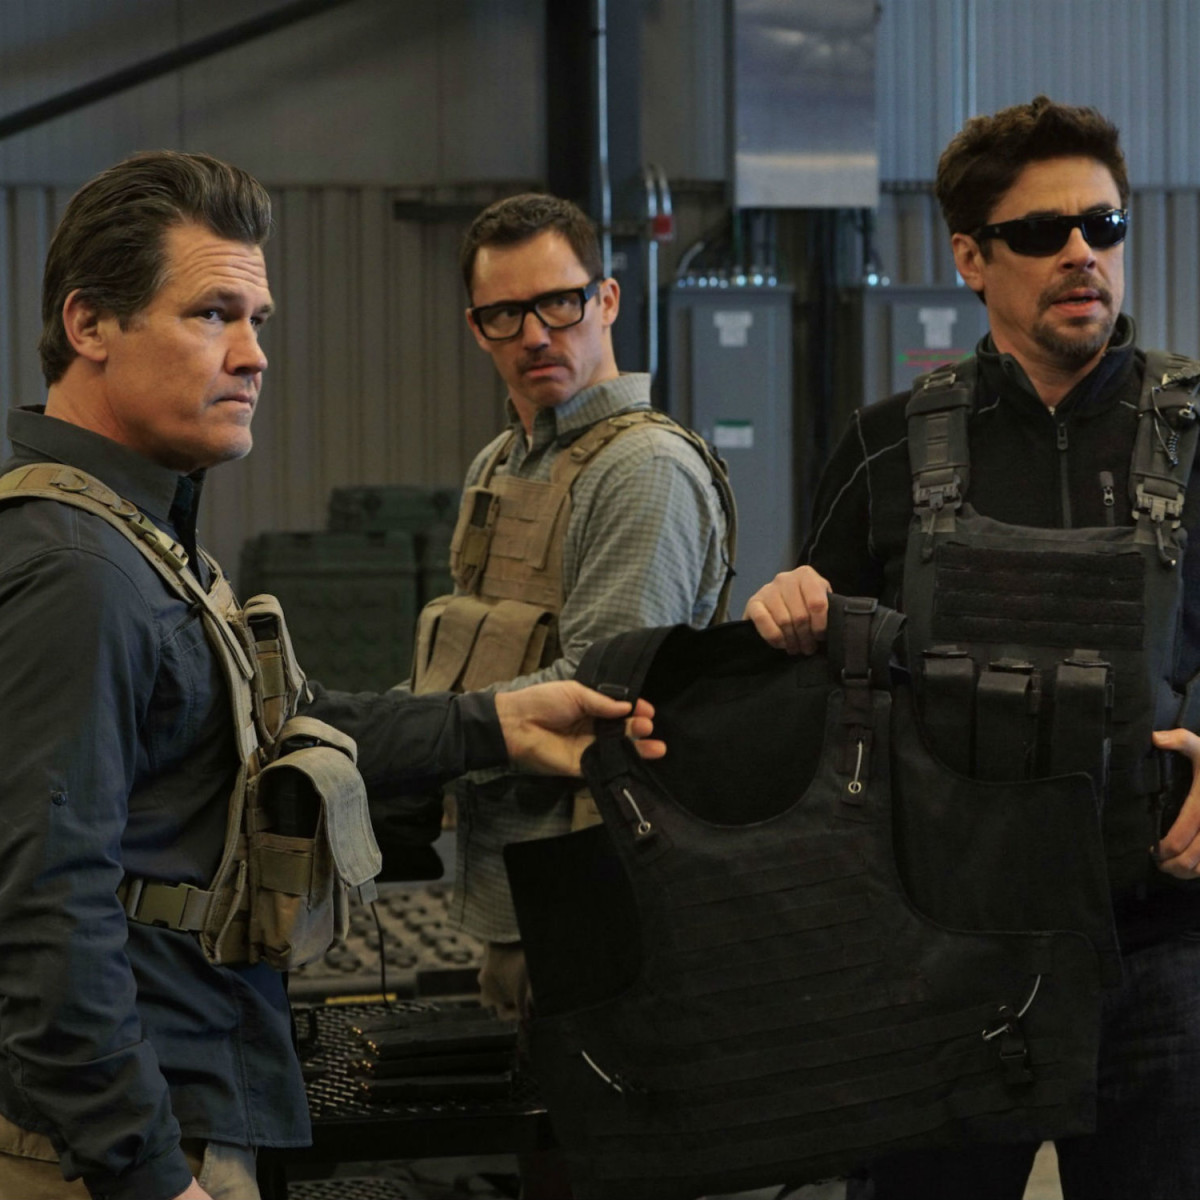 Josh Brolin, Jeffrey Donovan, and Benicio Del Toro in Sicario: Day of the Soldado